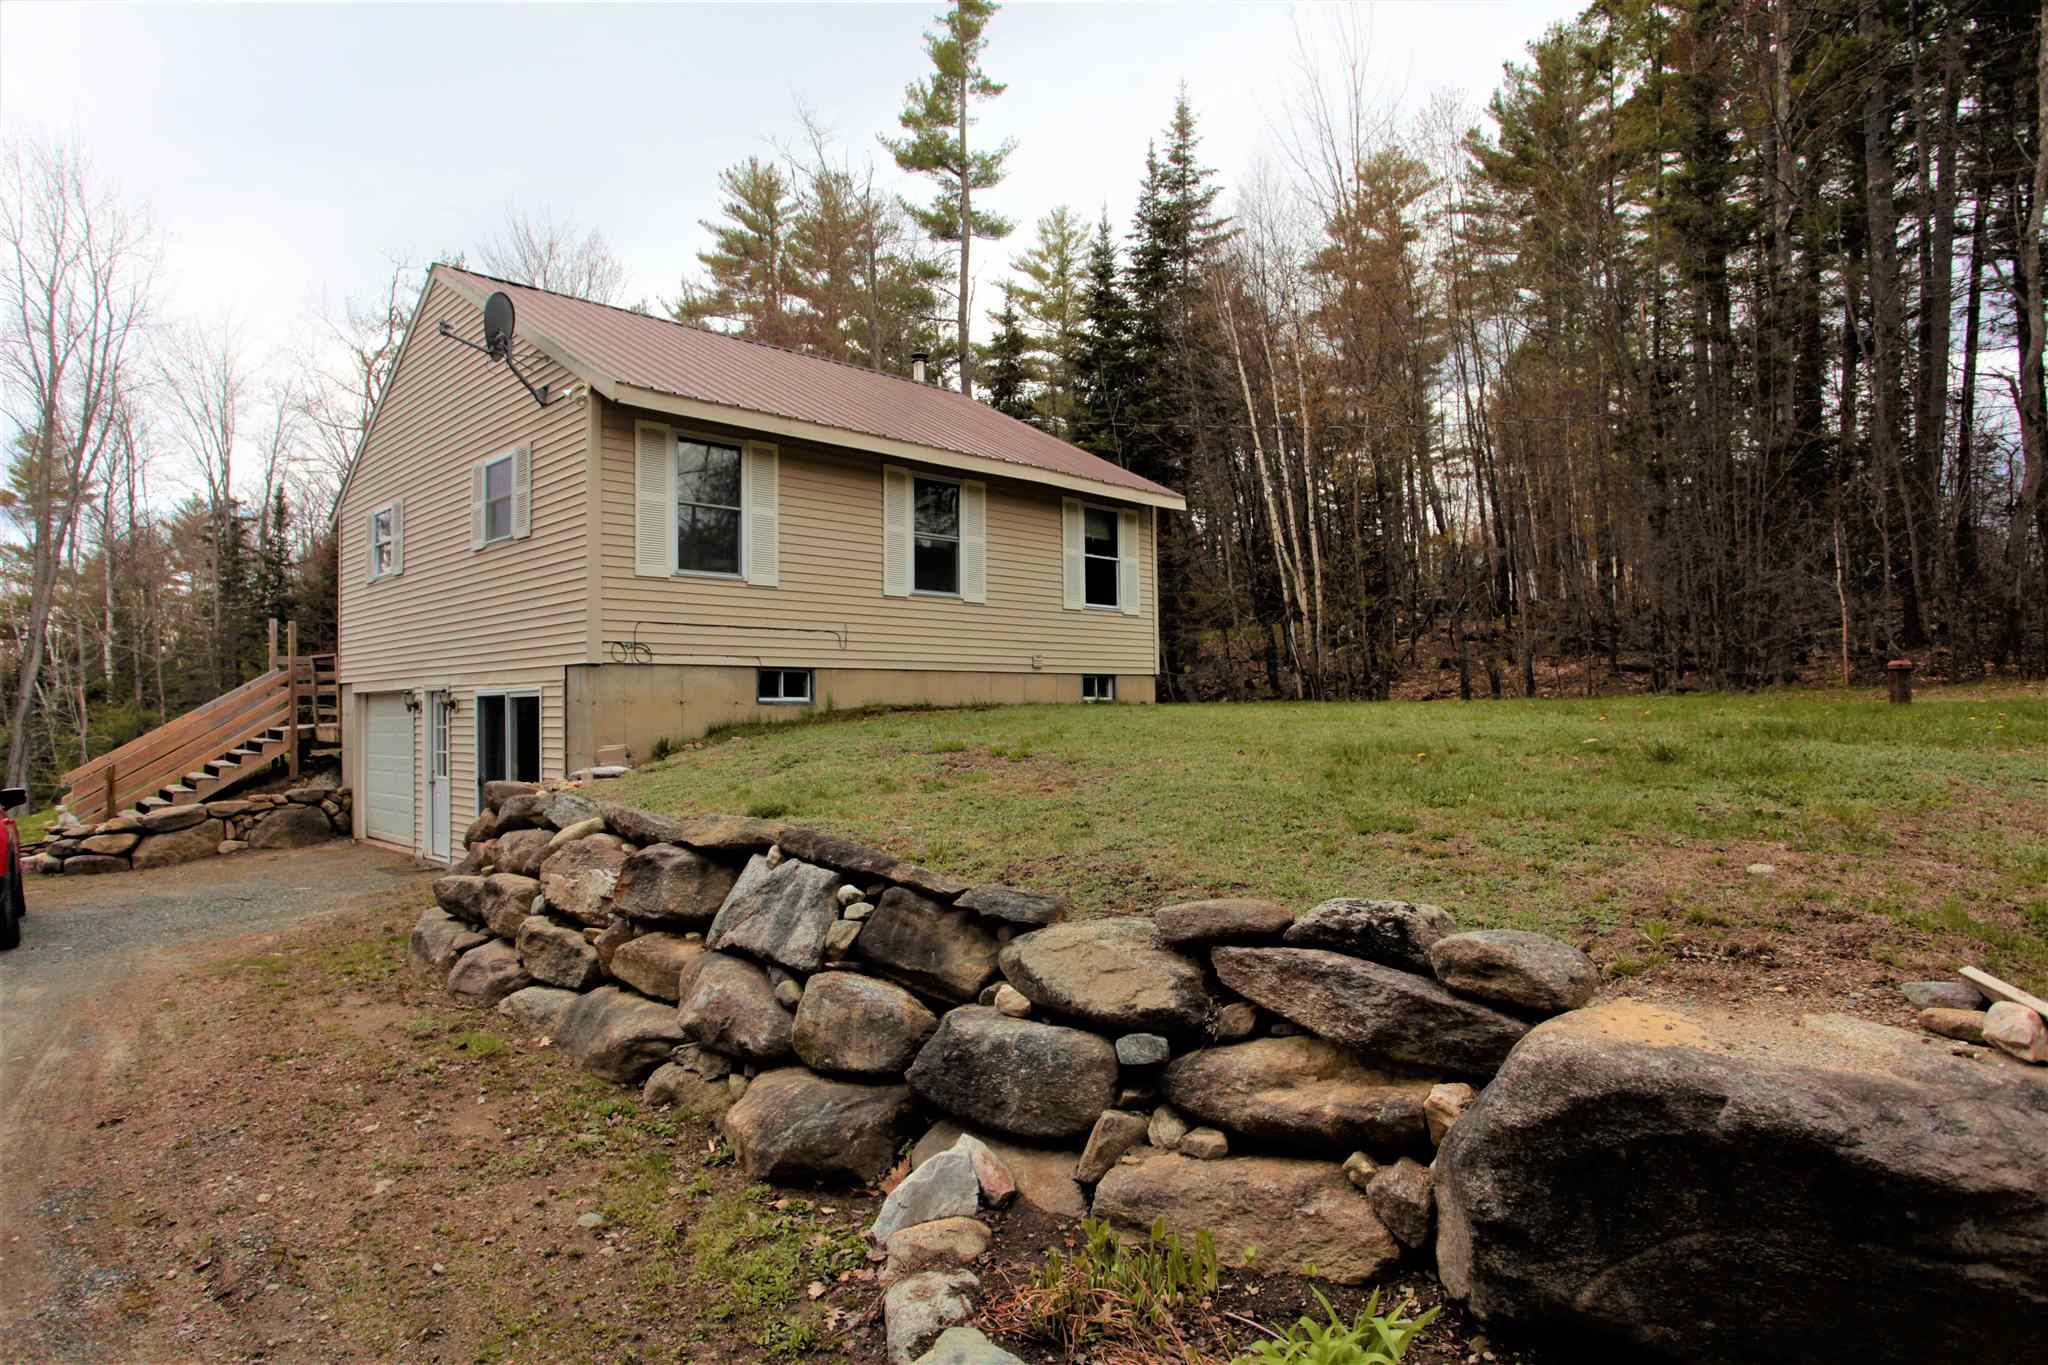 image of Unity NH Home | sq.ft. 1568